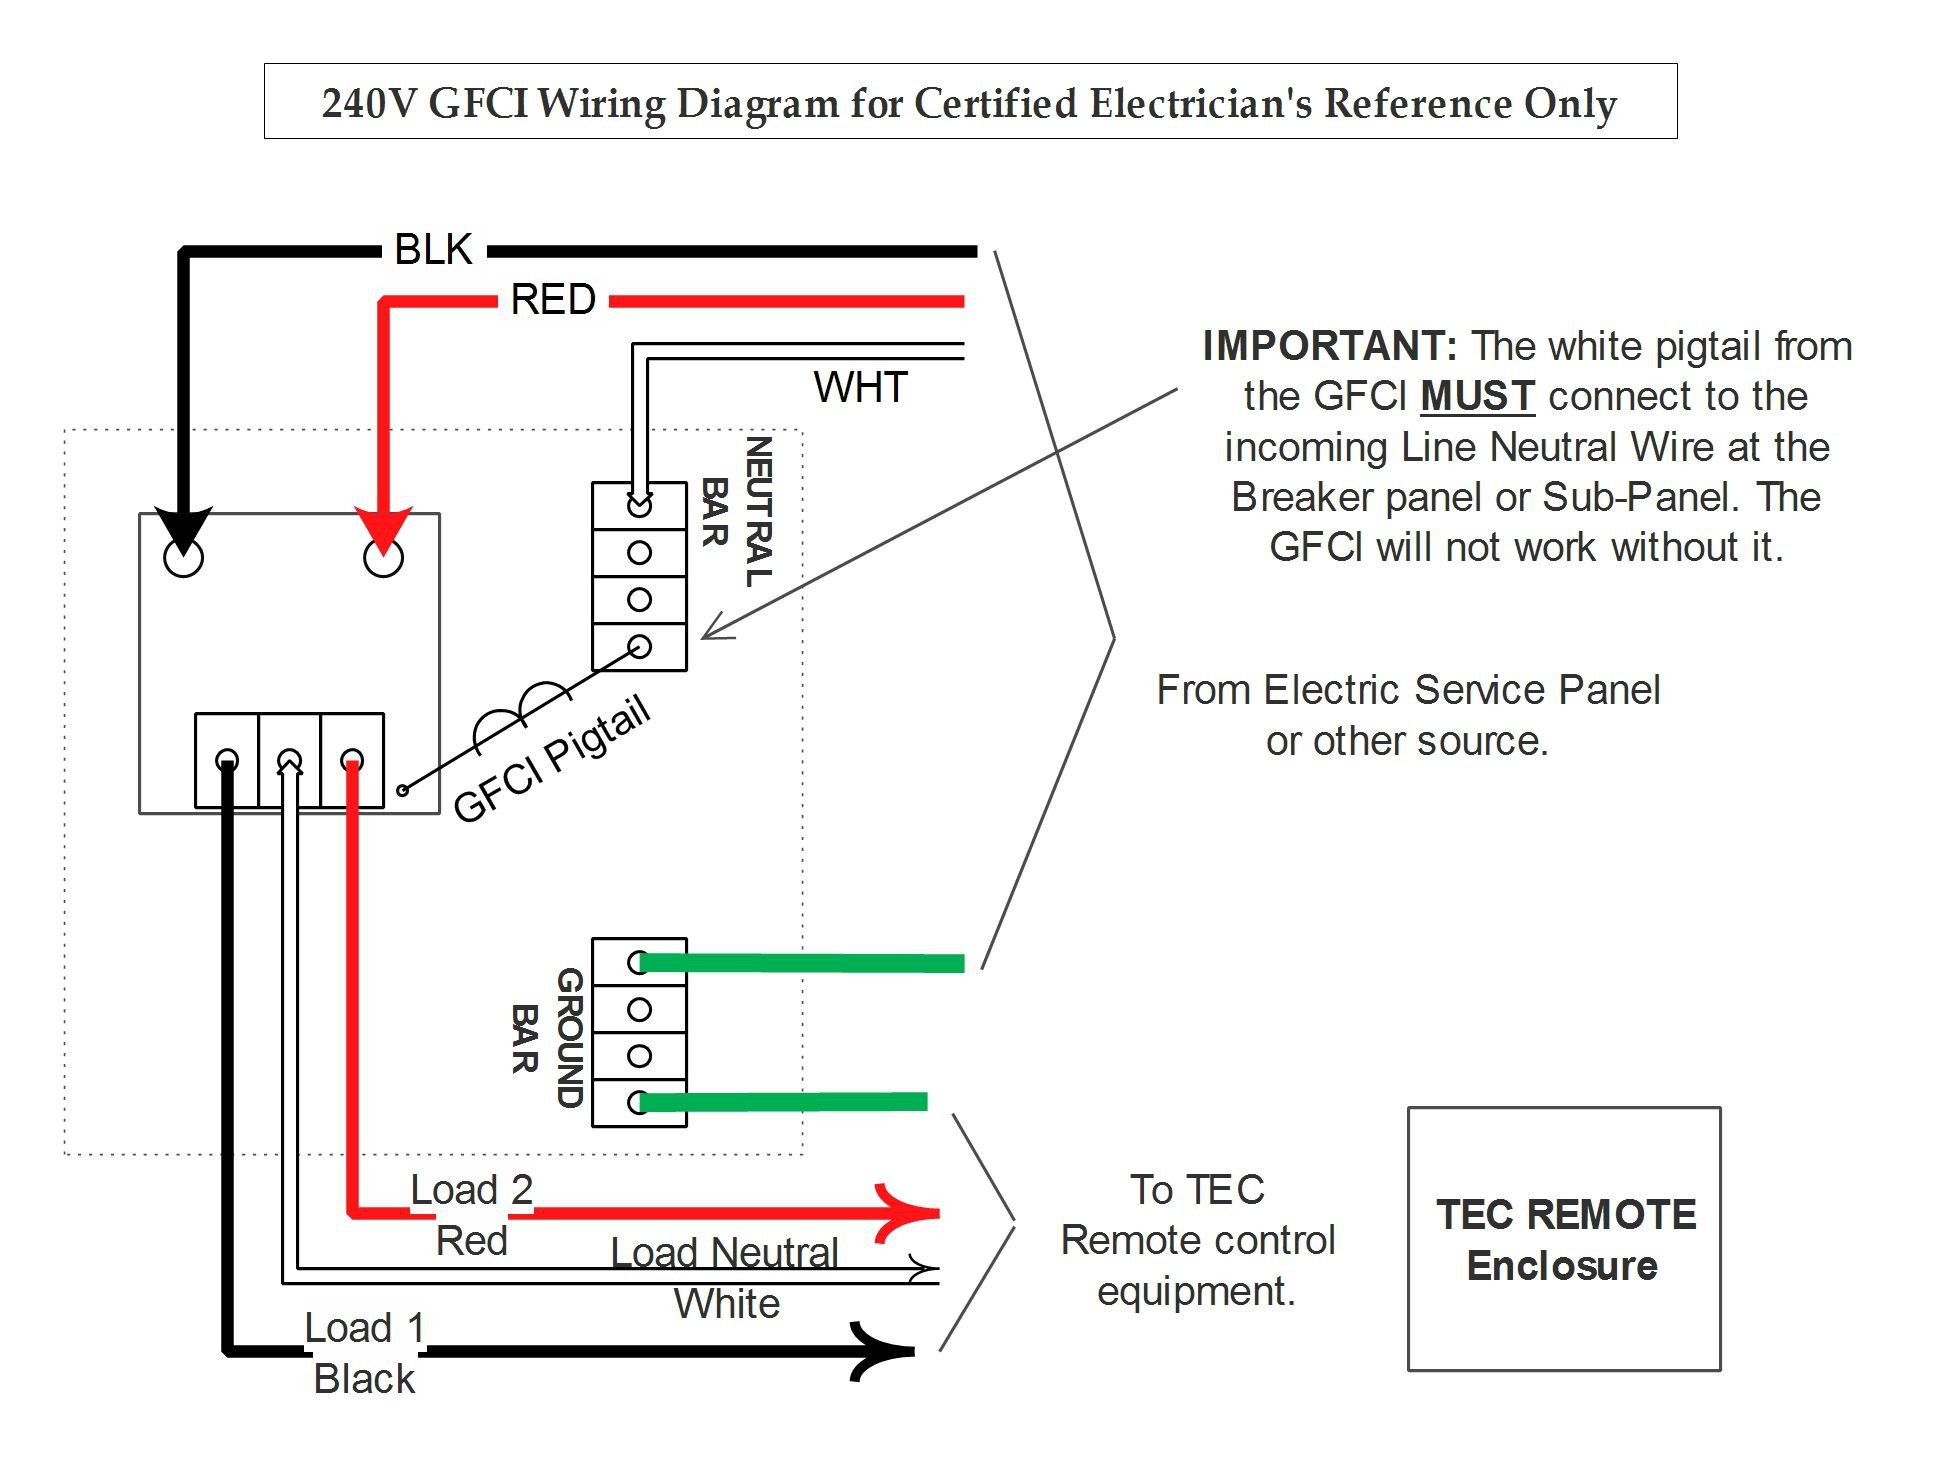 Wiring Diagram 2 Pole Gfci Breaker Recent Gfci Breaker Wiring - 2 Pole Gfci Breaker Wiring Diagram